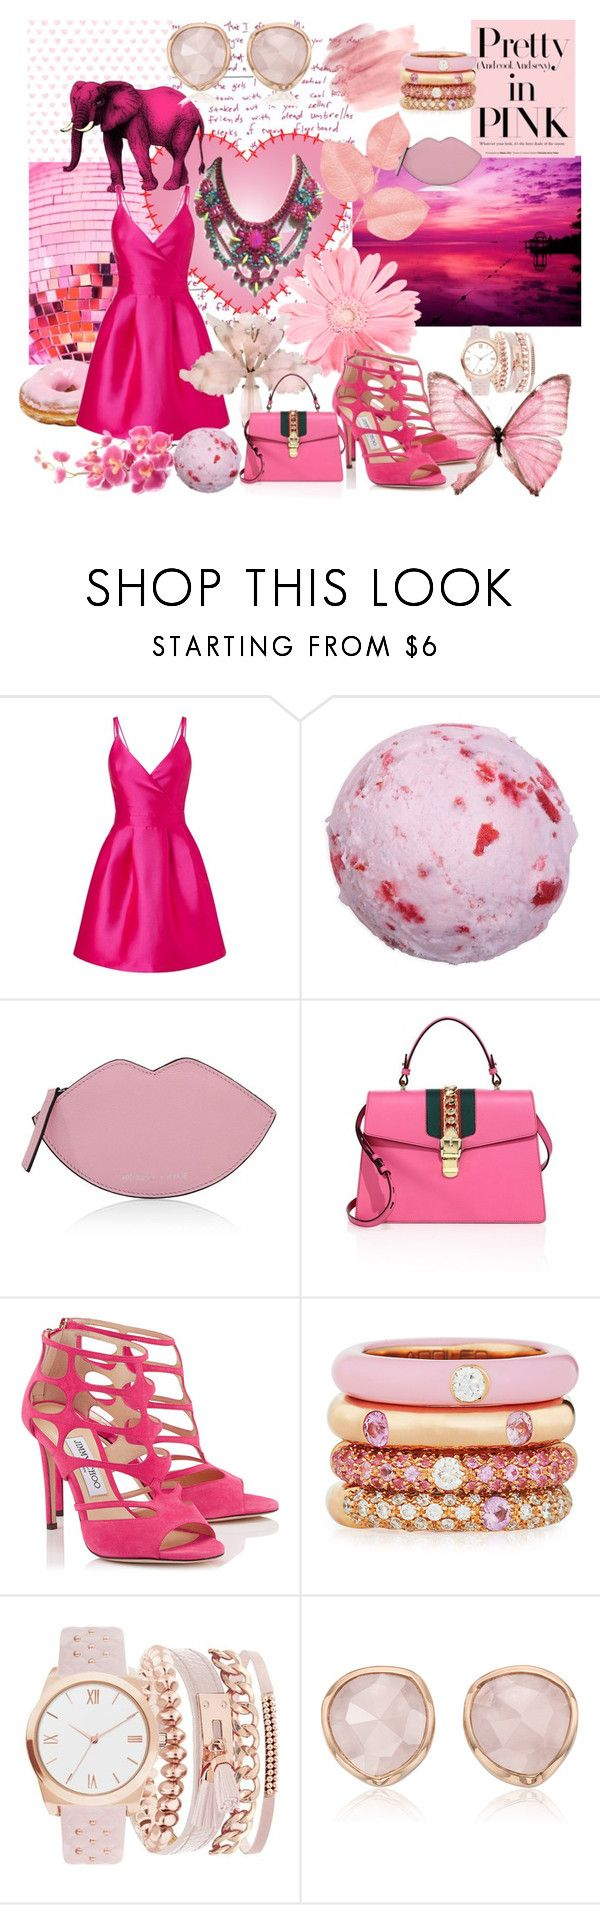 """pink!"" by mimmiandkinkistatementjewelry ❤ liked on Polyvore featuring Miss Selfridge, Kendall + Kylie, Gucci, Jimmy Choo, Adolfo Courrier, A.X.N.Y. and Monica Vinader"